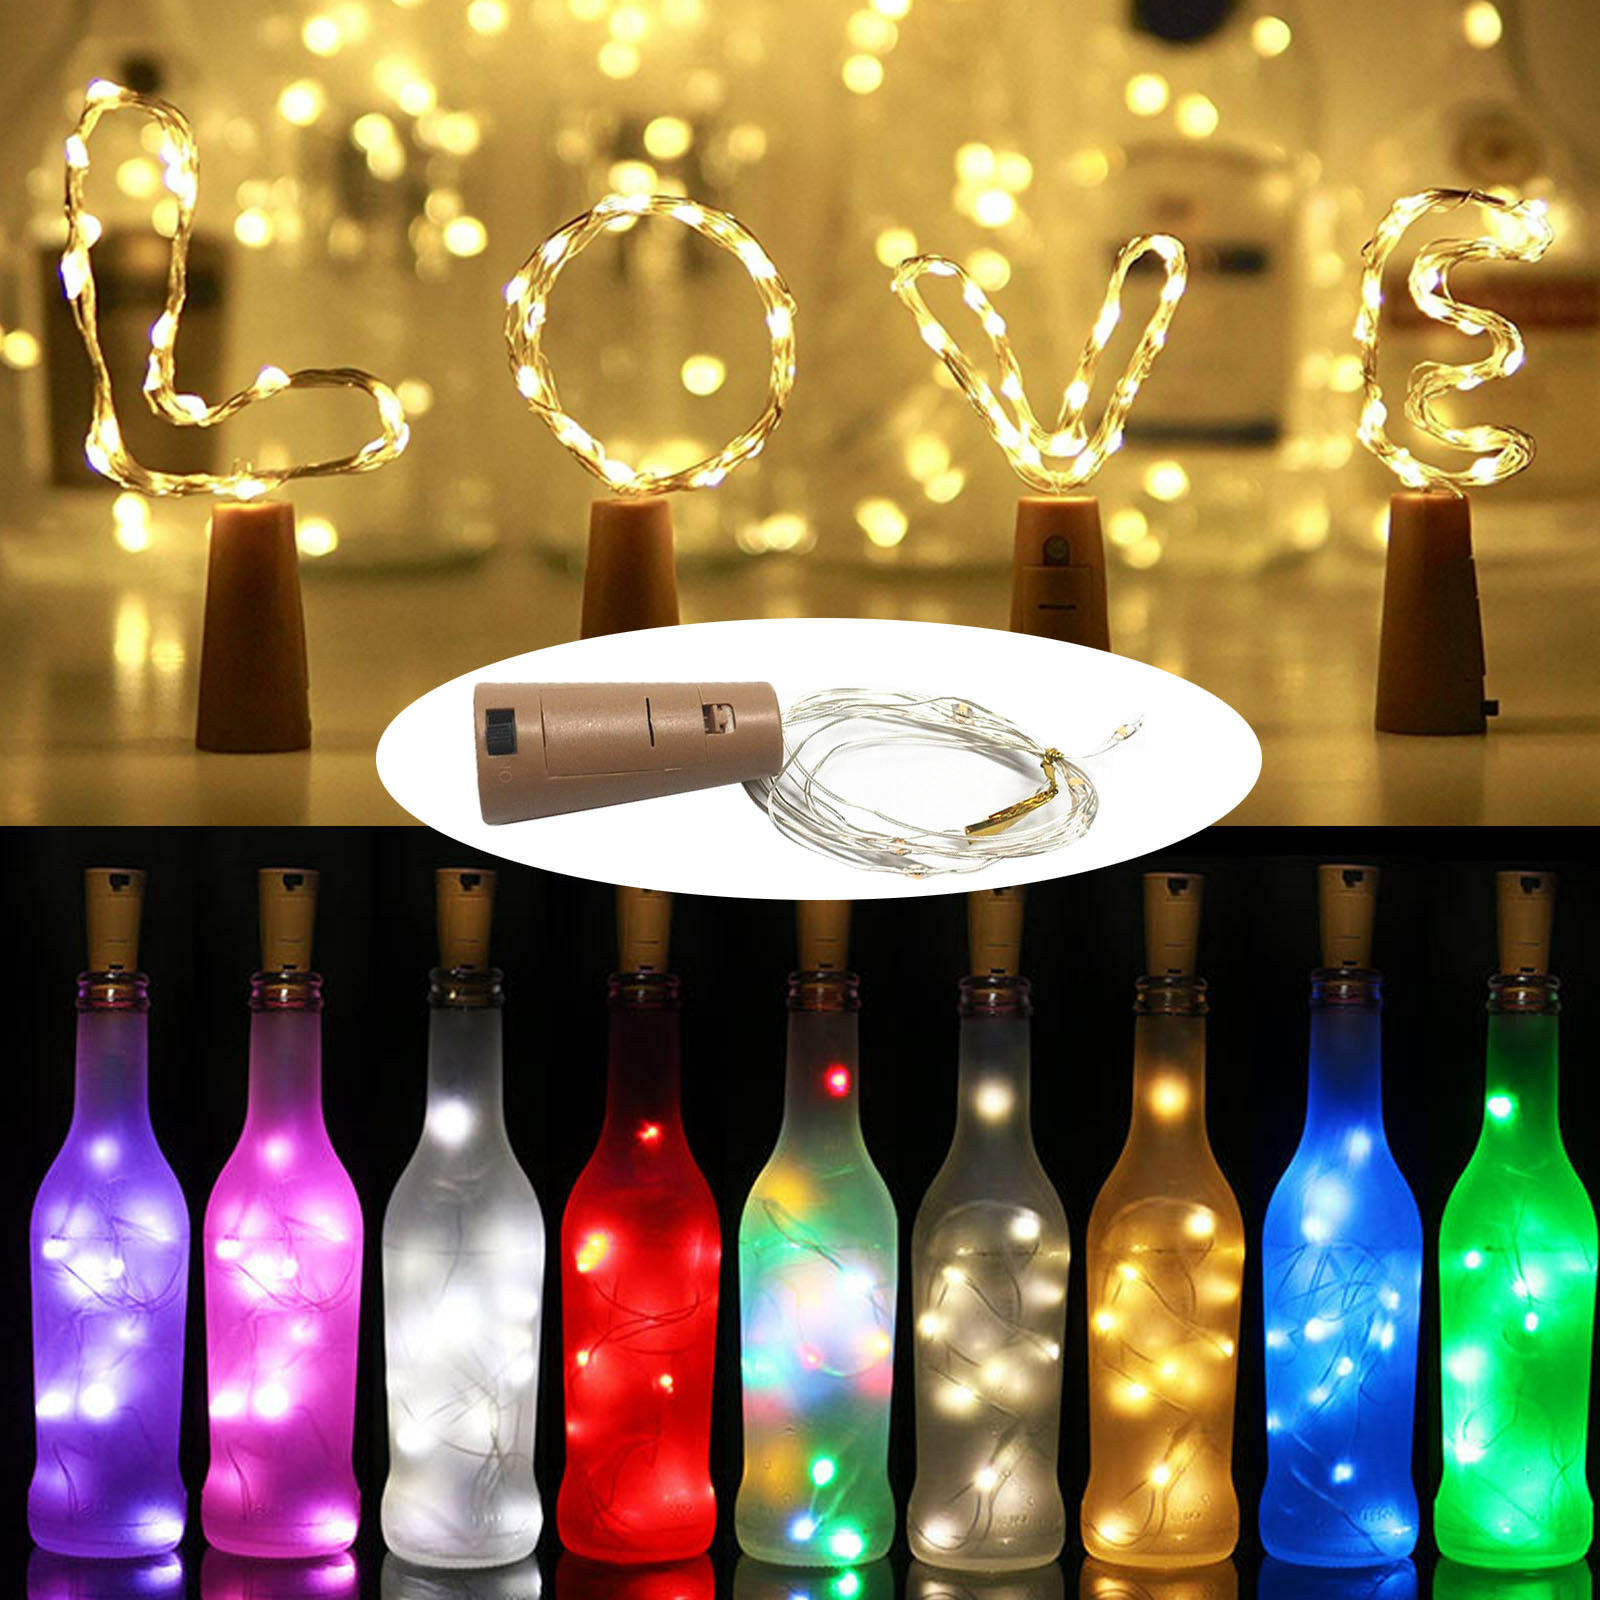 Cork Shaped Wine Bottle LED Silver Copper Wre String Light 1M 10LEDS LR44 Battery Powered For Glass Craft Xmas Party Decoration